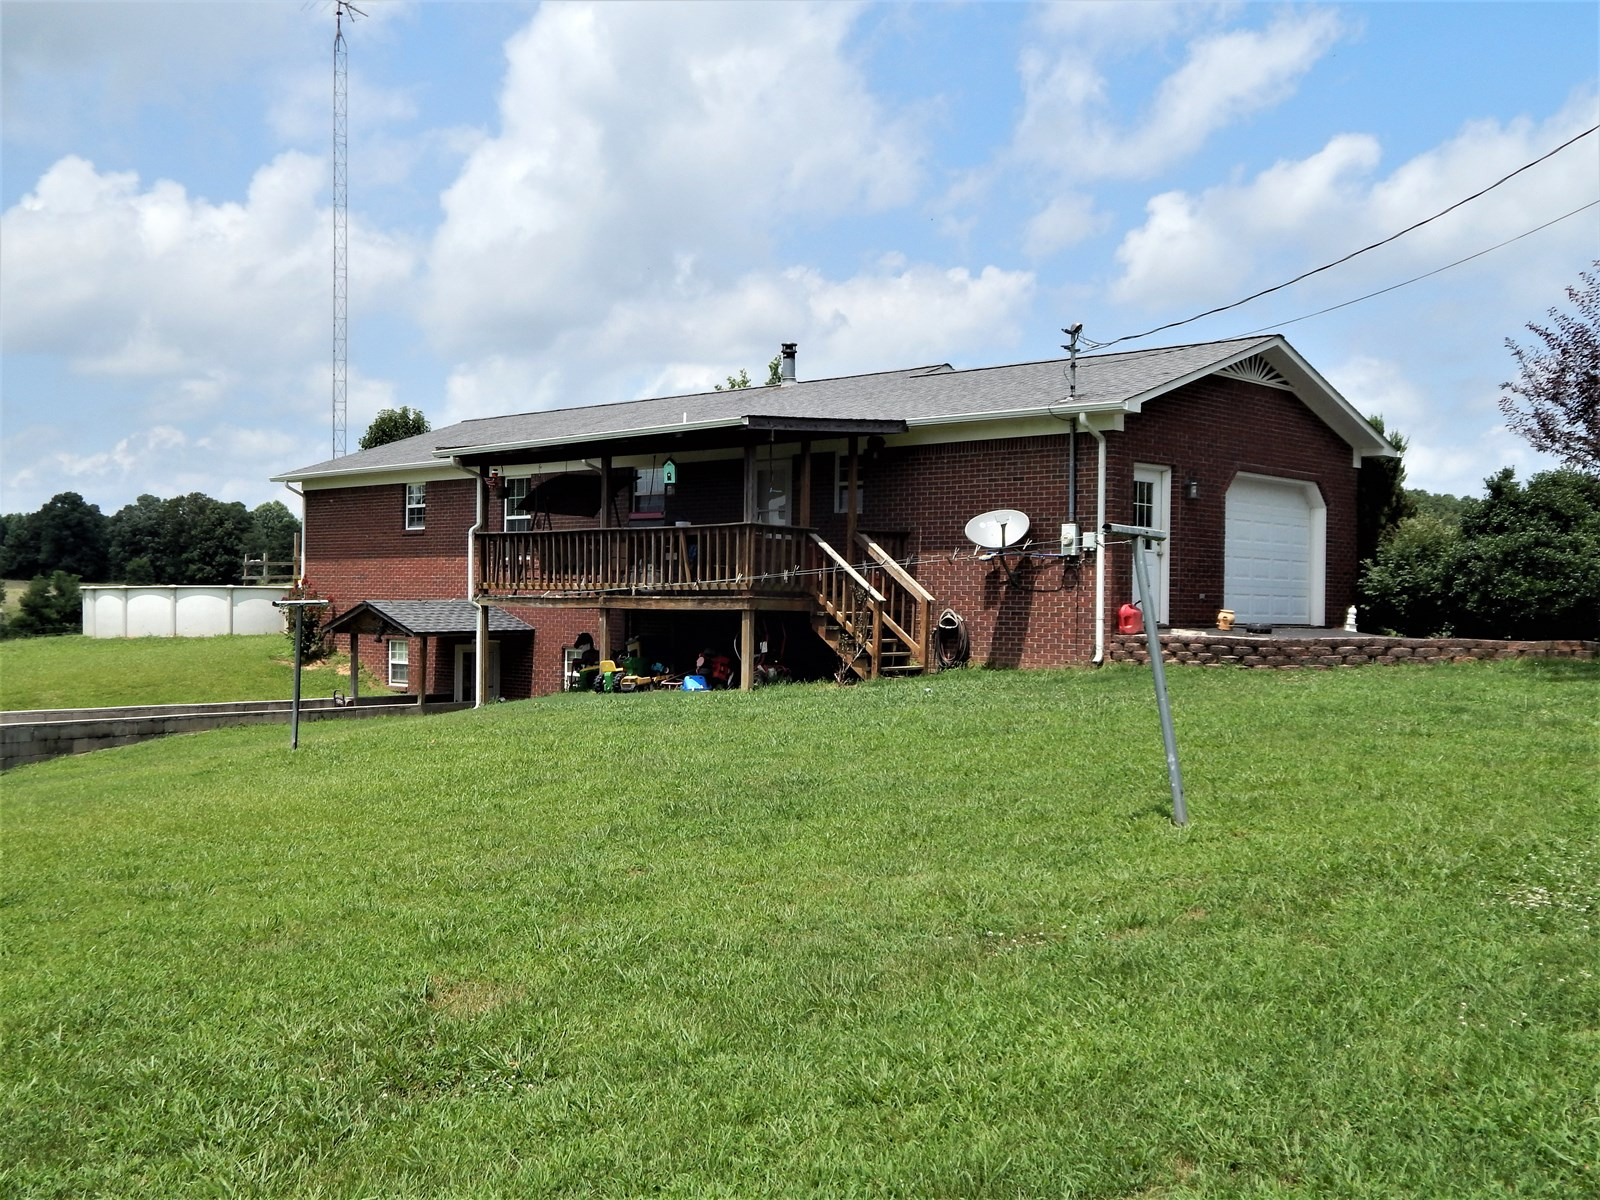 For Sale Tennessee Country Home - Farm, 55 6 Acres, 2 Ponds!